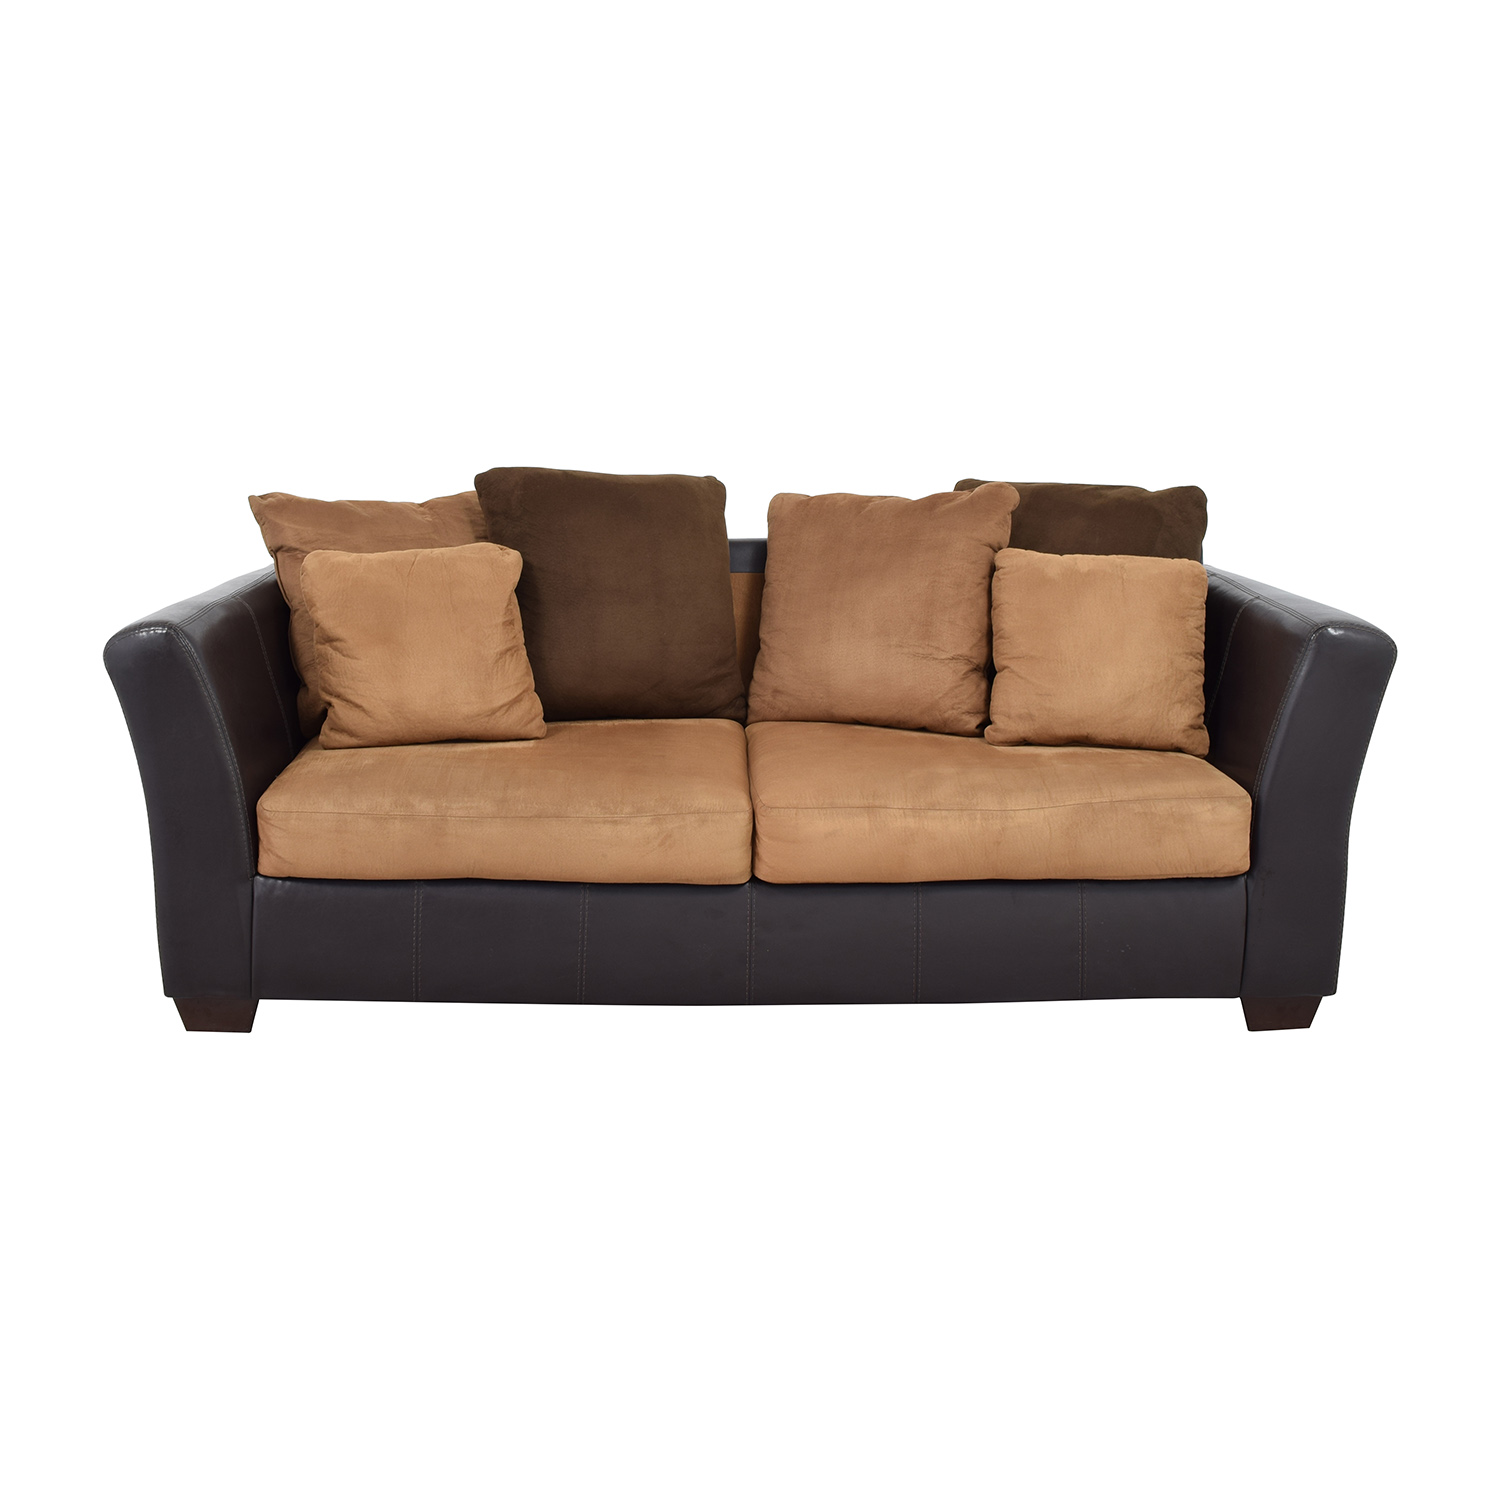 Ashley Furniture Sofa 32% off - ashley furniture ashley furniture gray tufted sofa / sofas